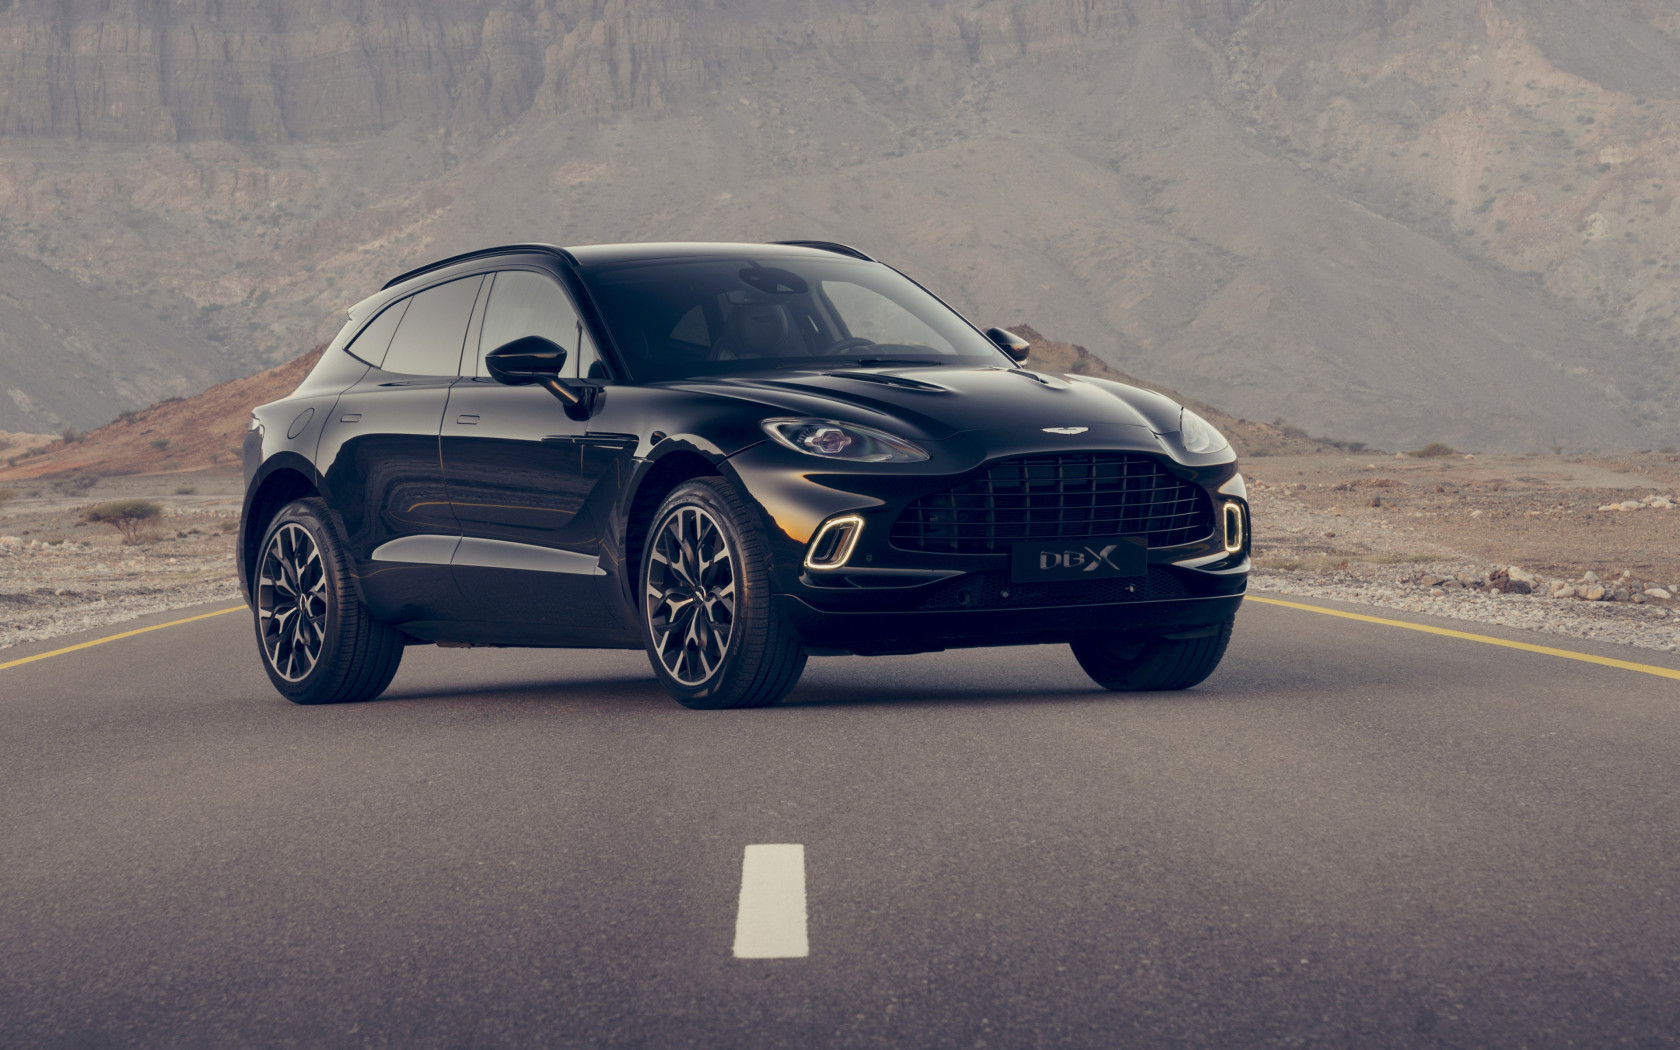 Aston Martin DBX wallpaper 1680x1050